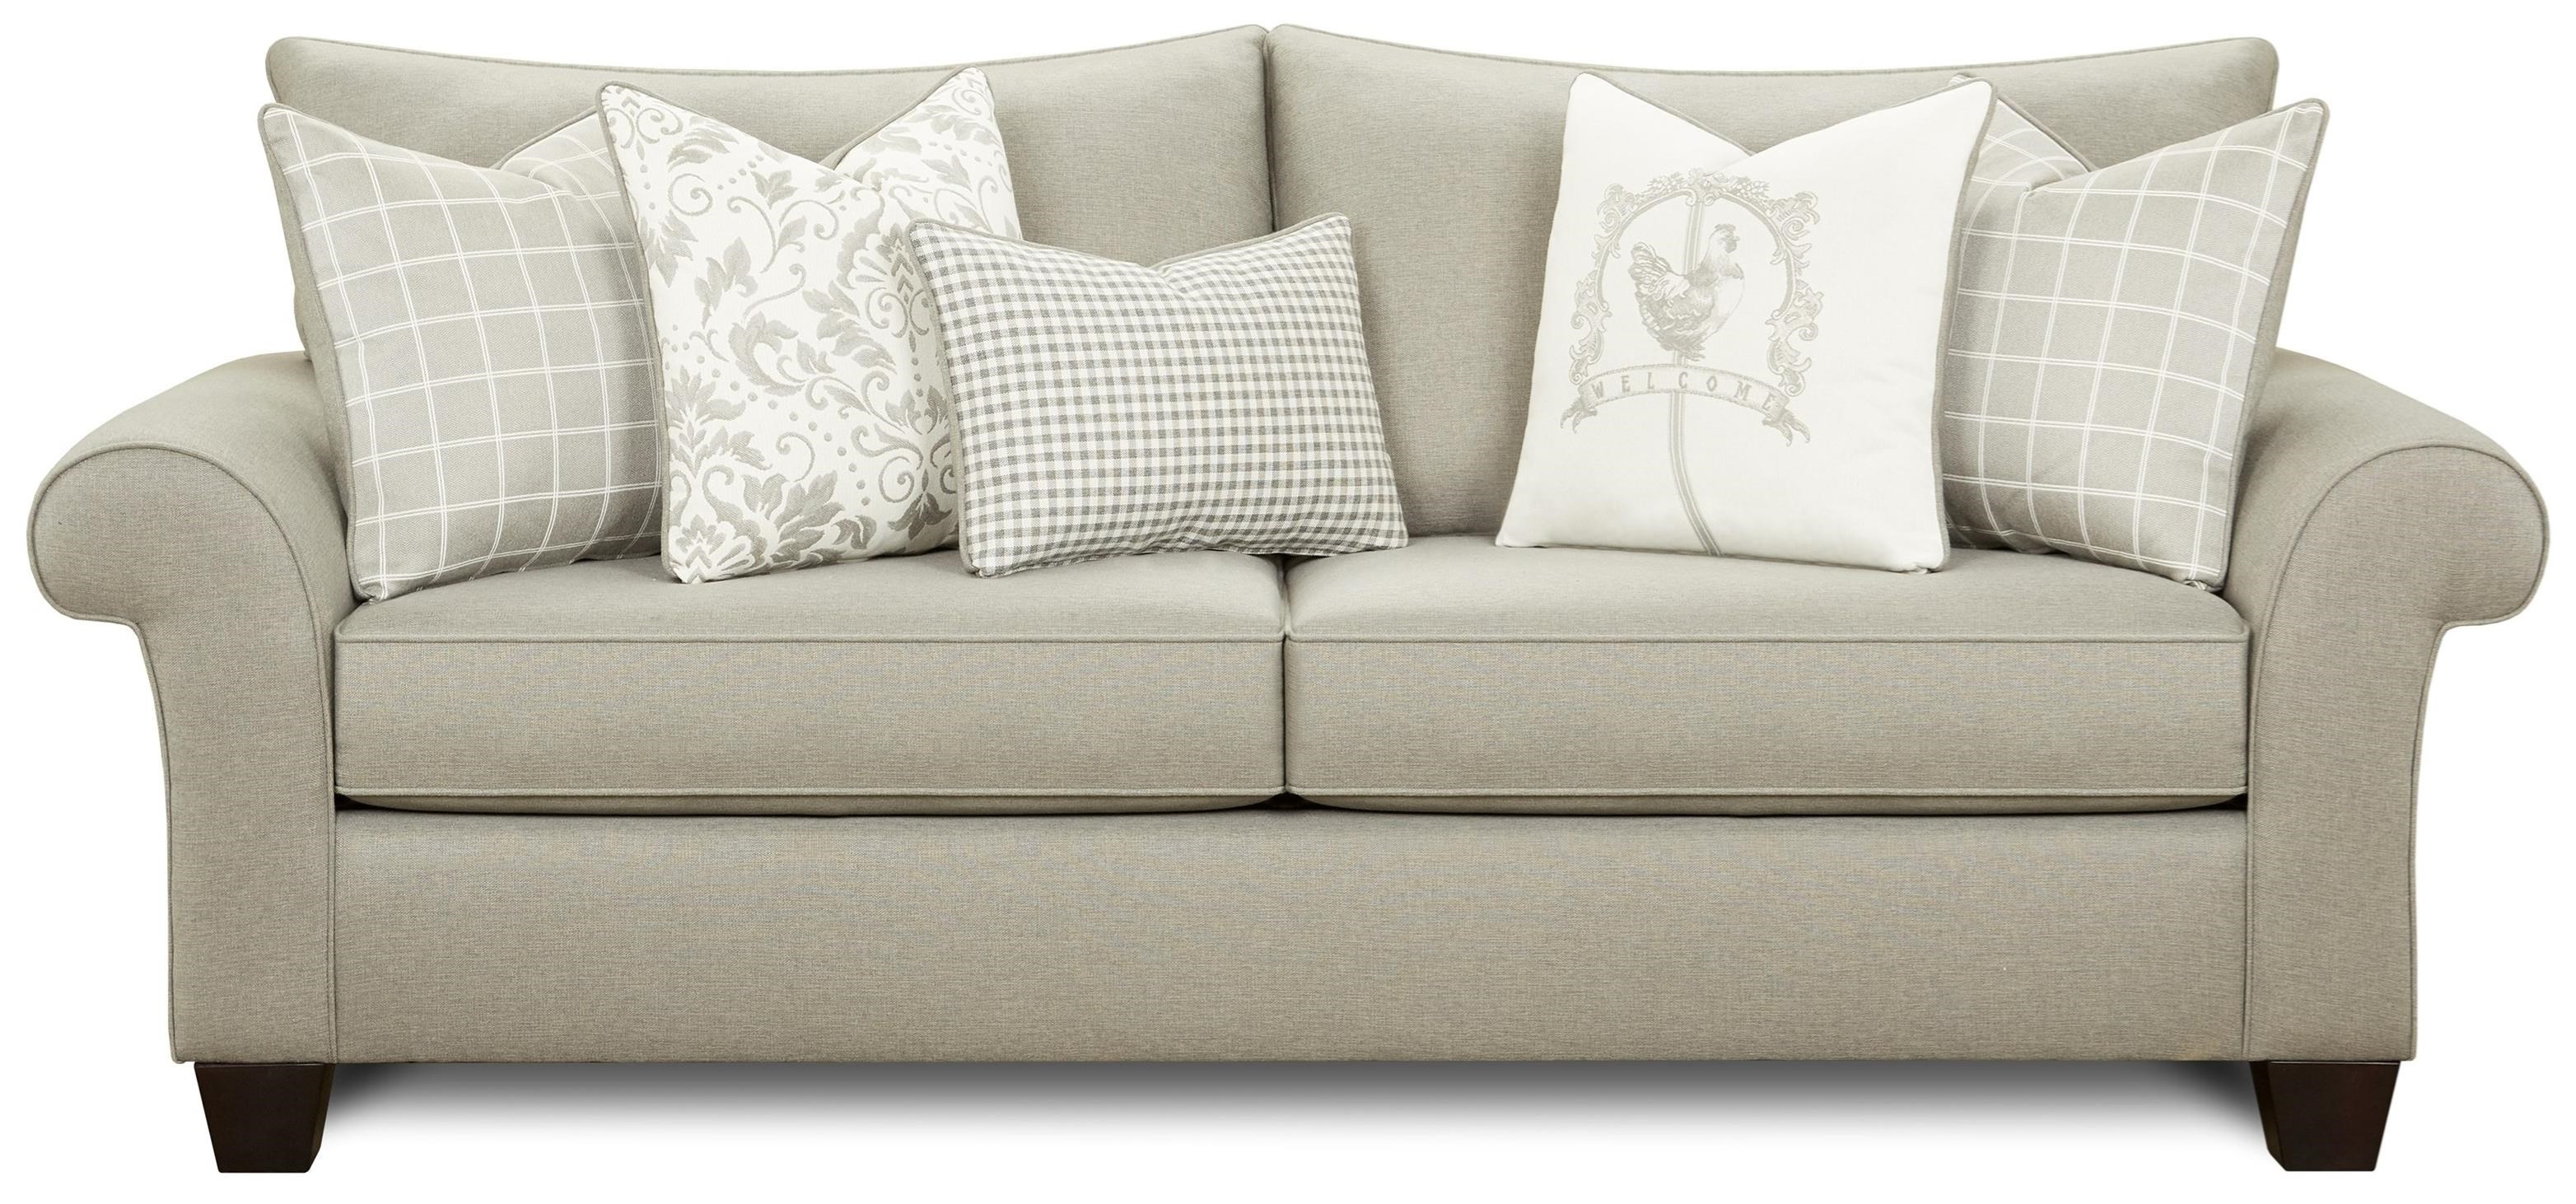 50-00 Sleeper by FN at Lindy's Furniture Company